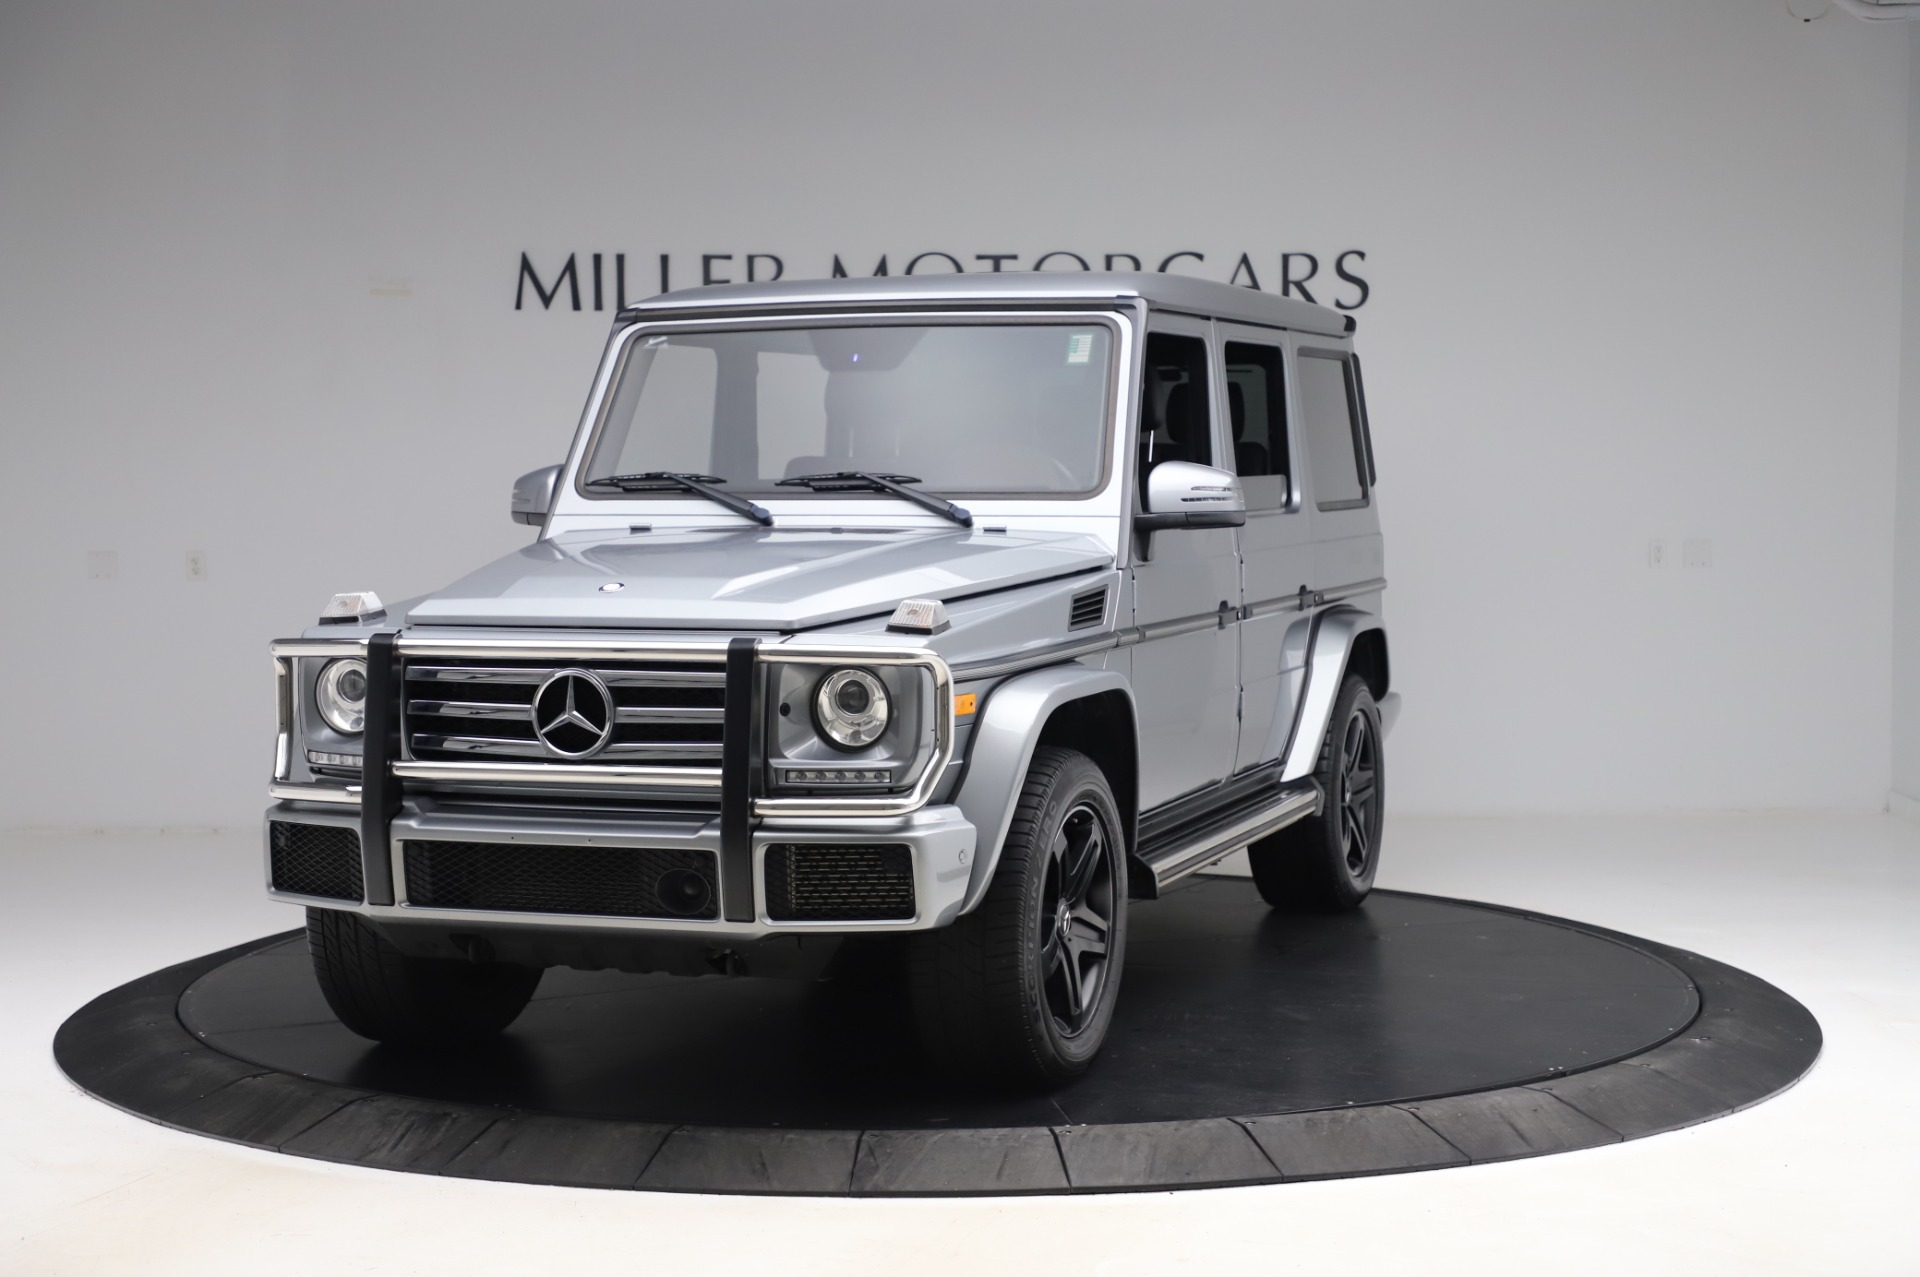 pre owned 2017 mercedes benz g class g 550 for sale special pricing bugatti of greenwich stock 7700a bugatti of greenwich